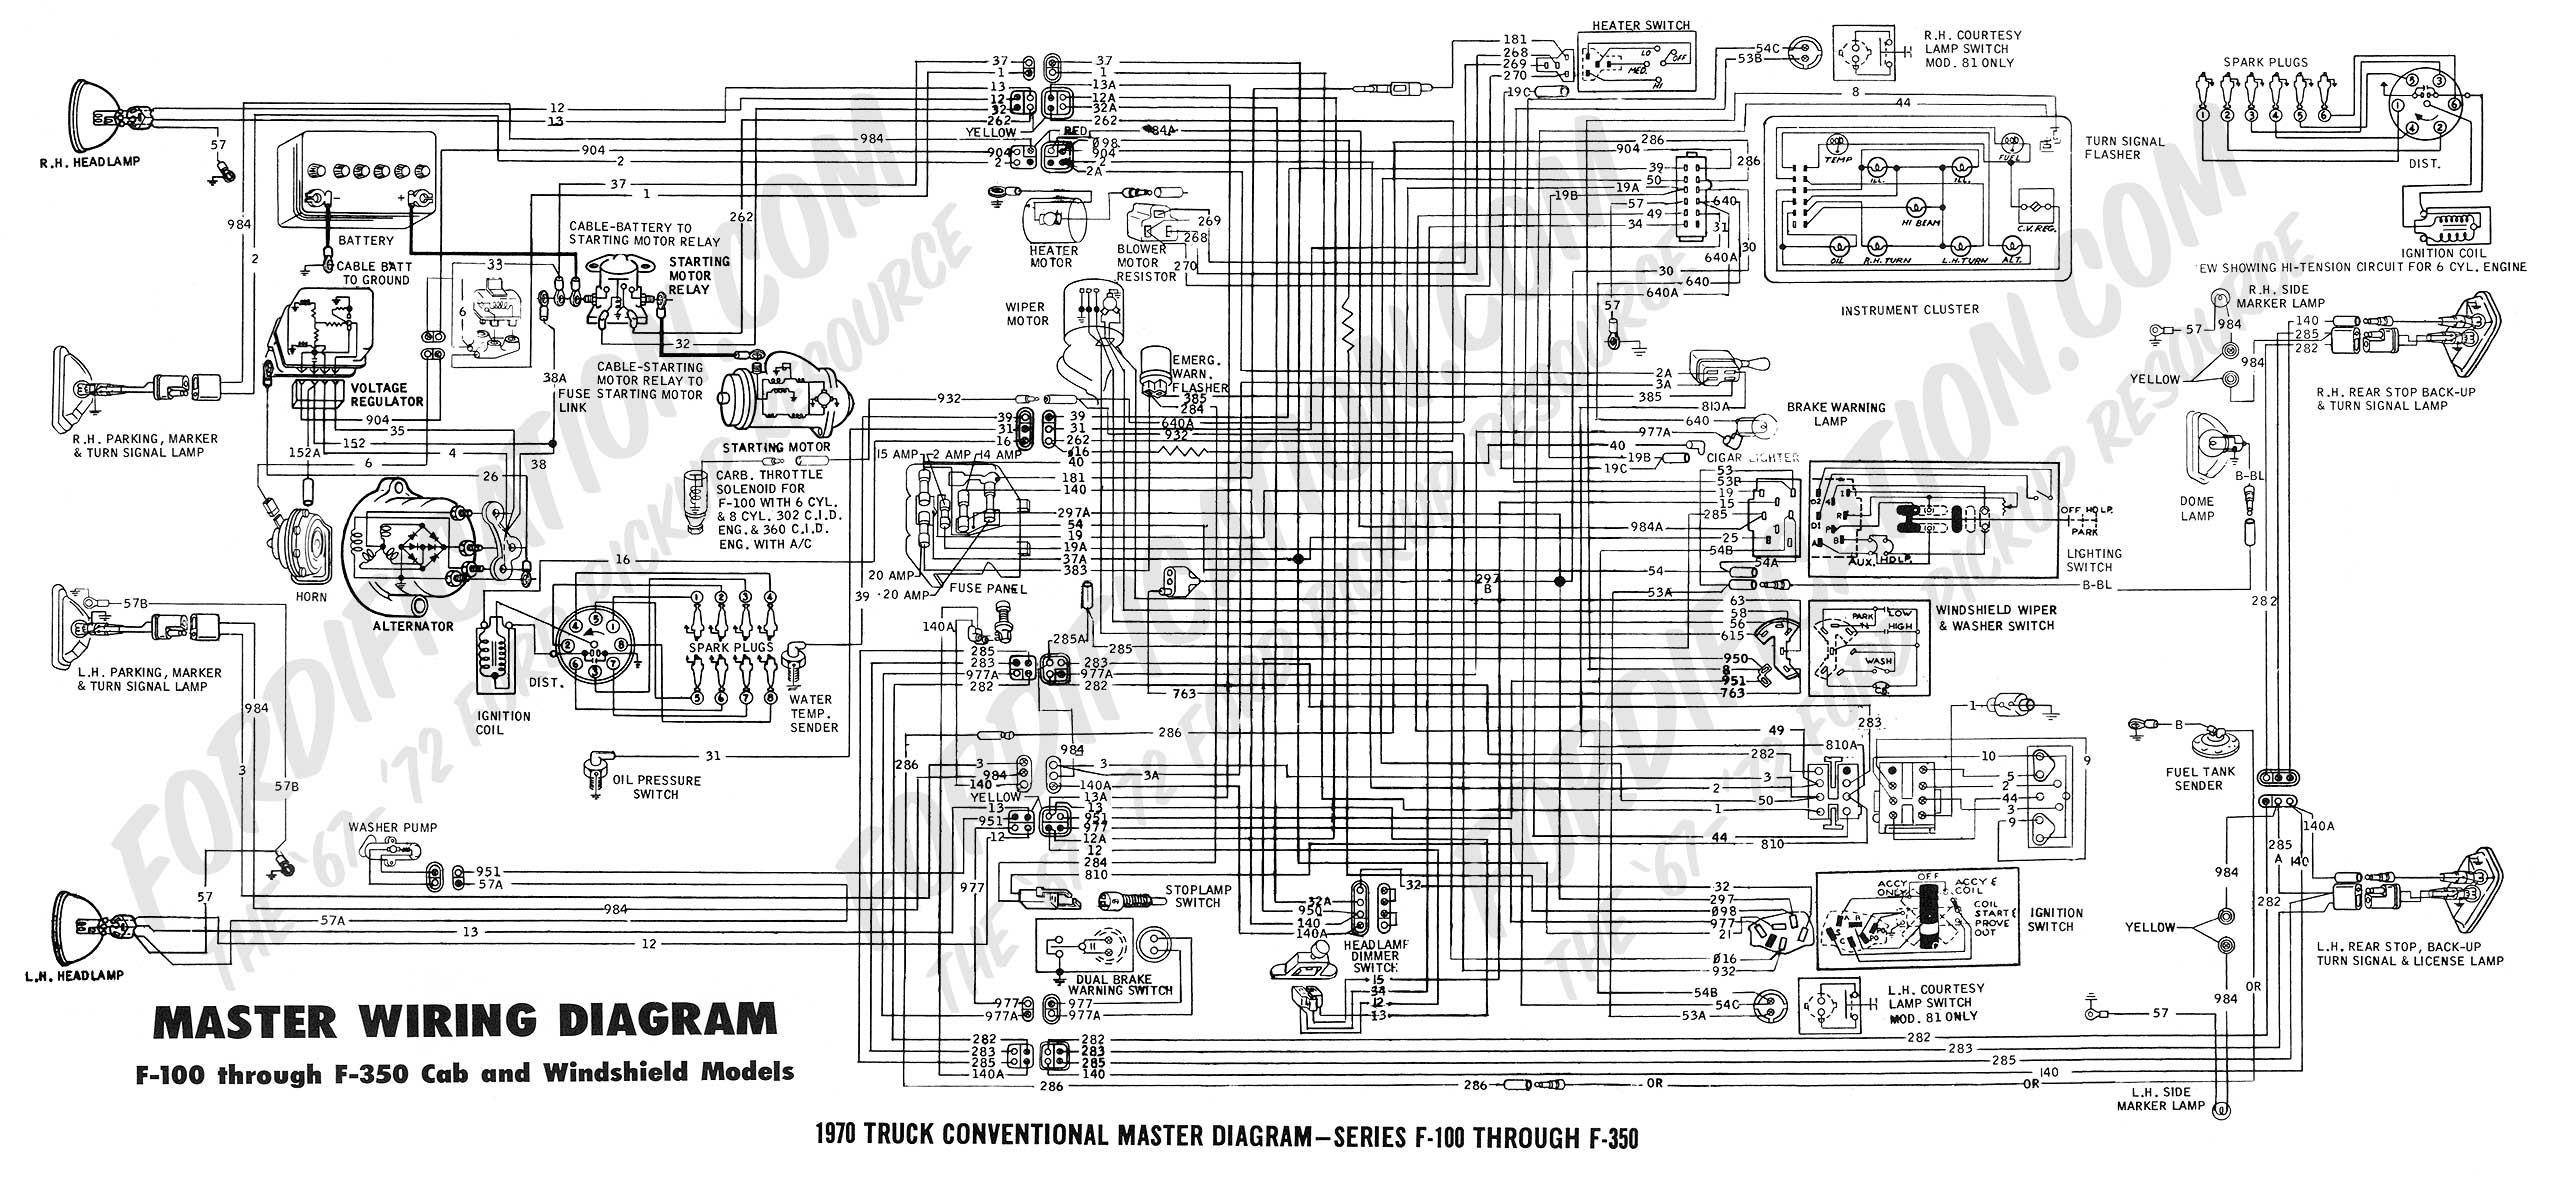 2006 ford super duty wiring diagram - wiring diagram system die-image -  die-image.ediliadesign.it  ediliadesign.it